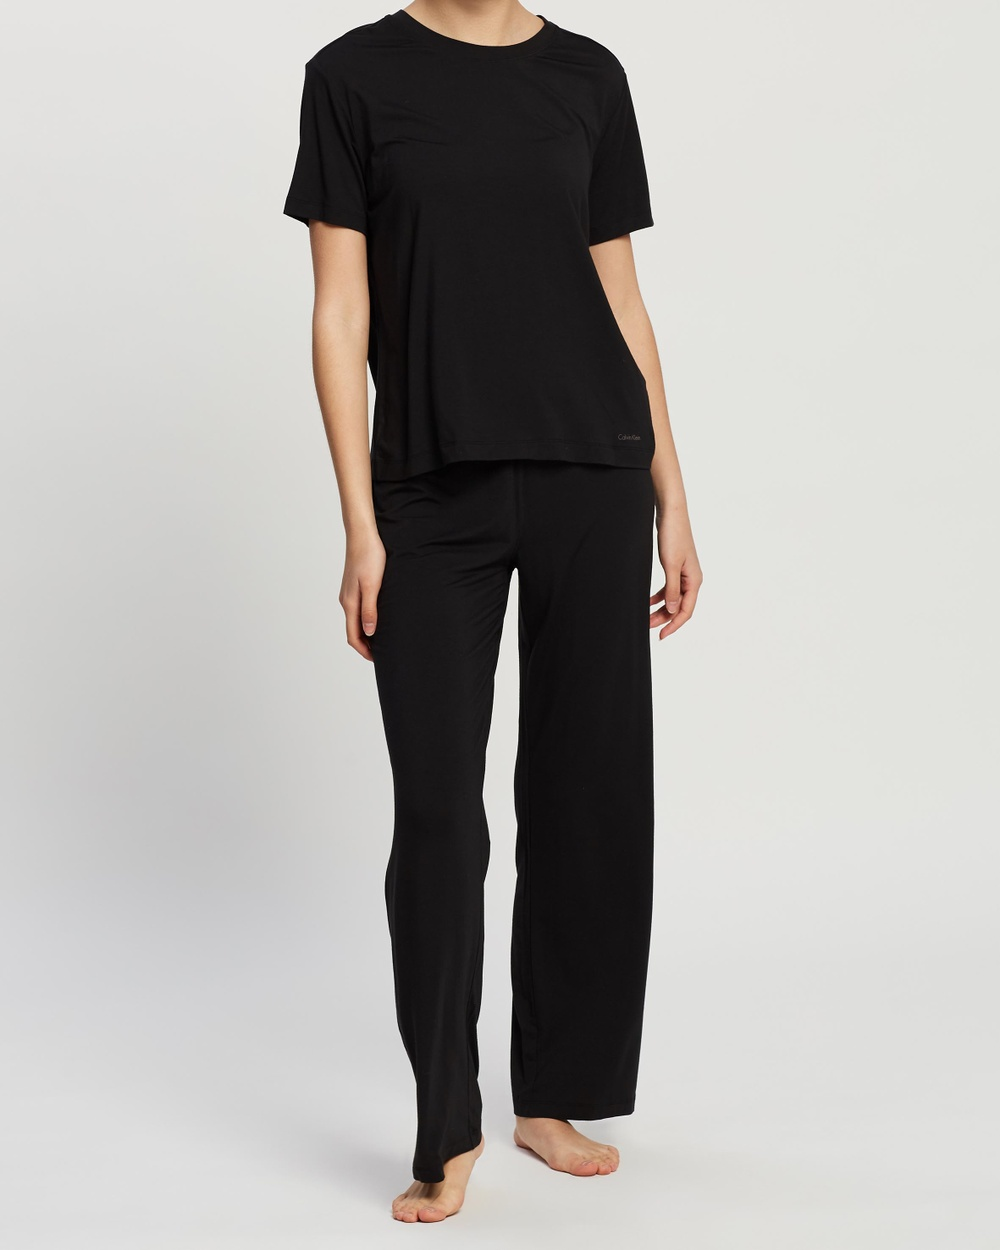 Sophisticated Lounge Na Only SS Crew Neck Tee - Sleepwear